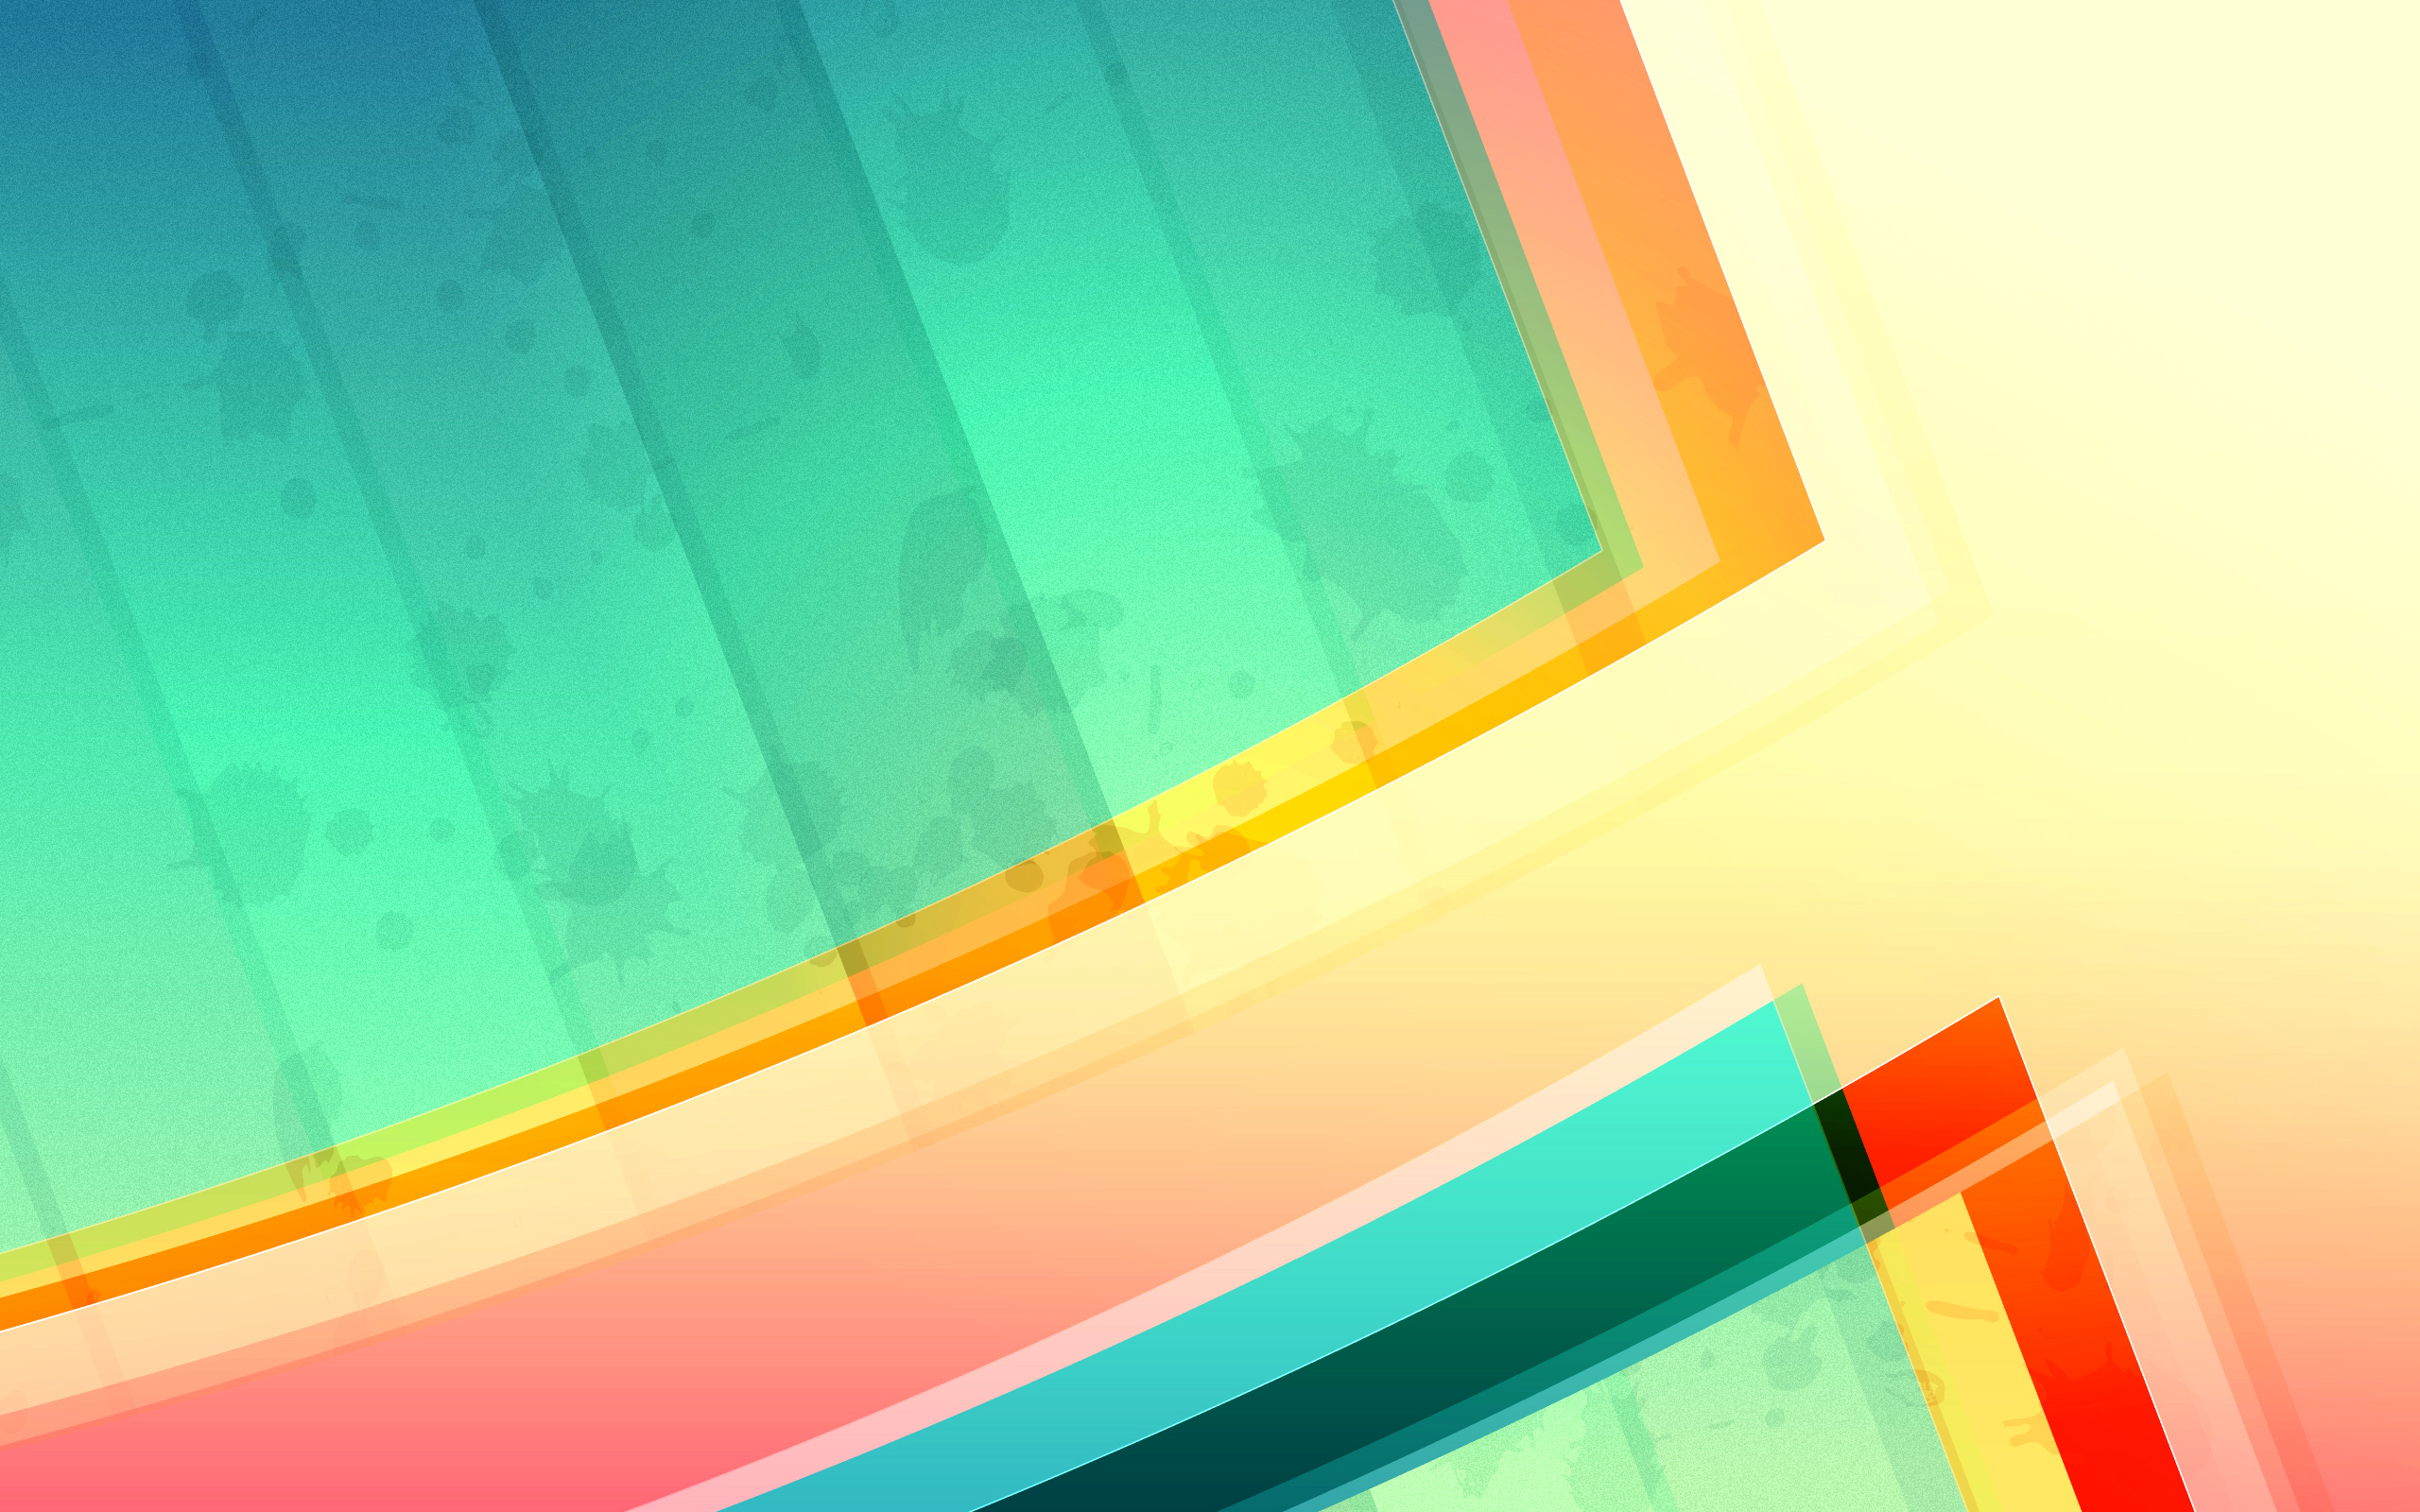 Abstract Lines Colorful Wallpaper - Color Line Pattern Background - HD Wallpaper